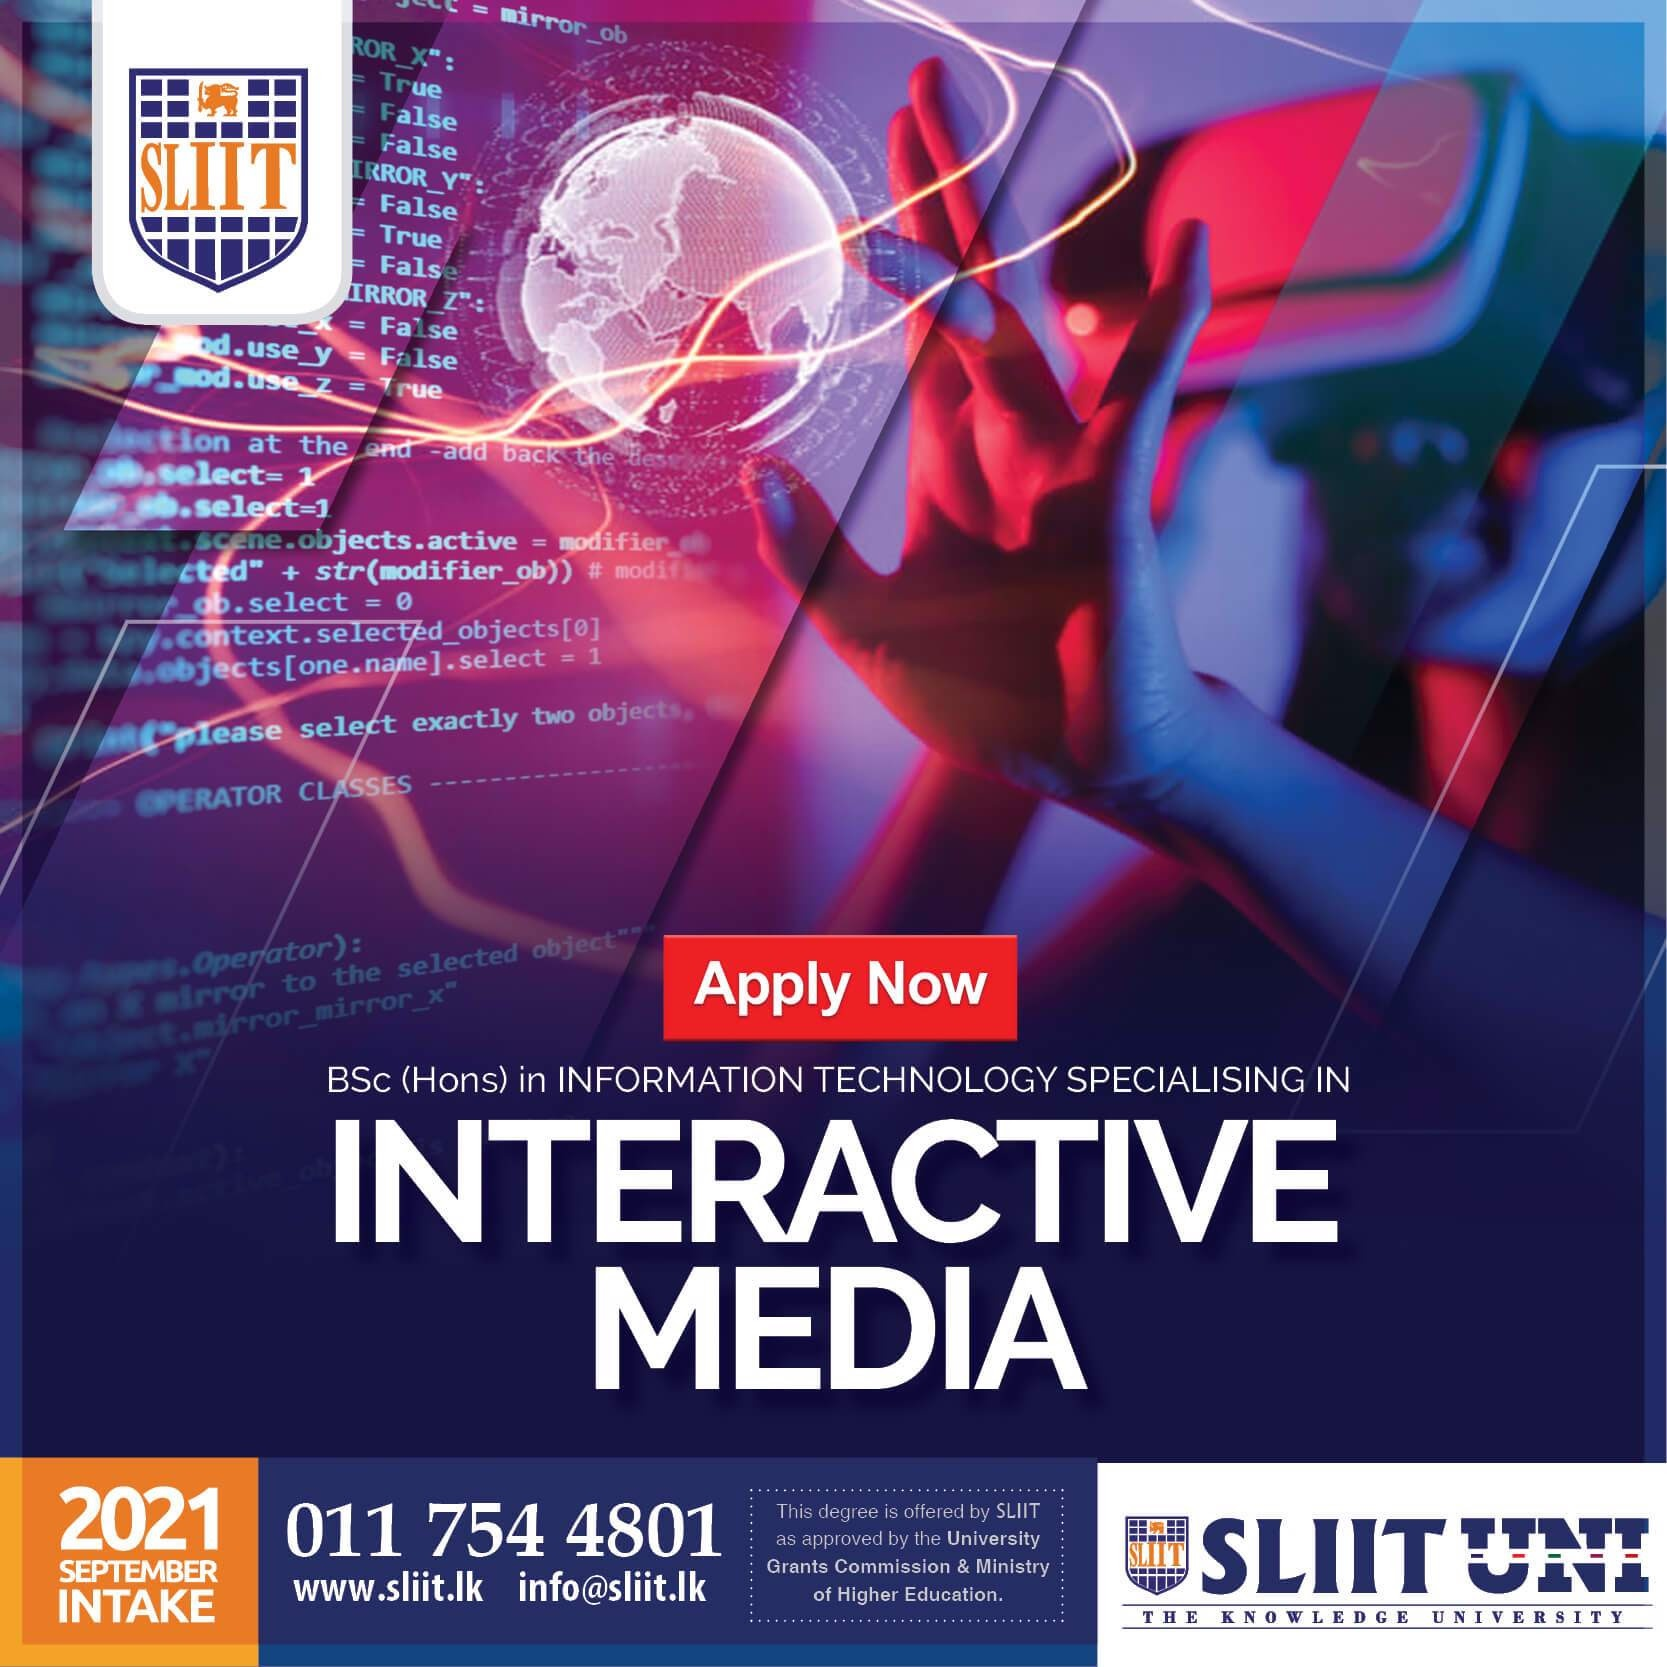 BSc (Hons) in Interactive Media Degree now at SLIIT